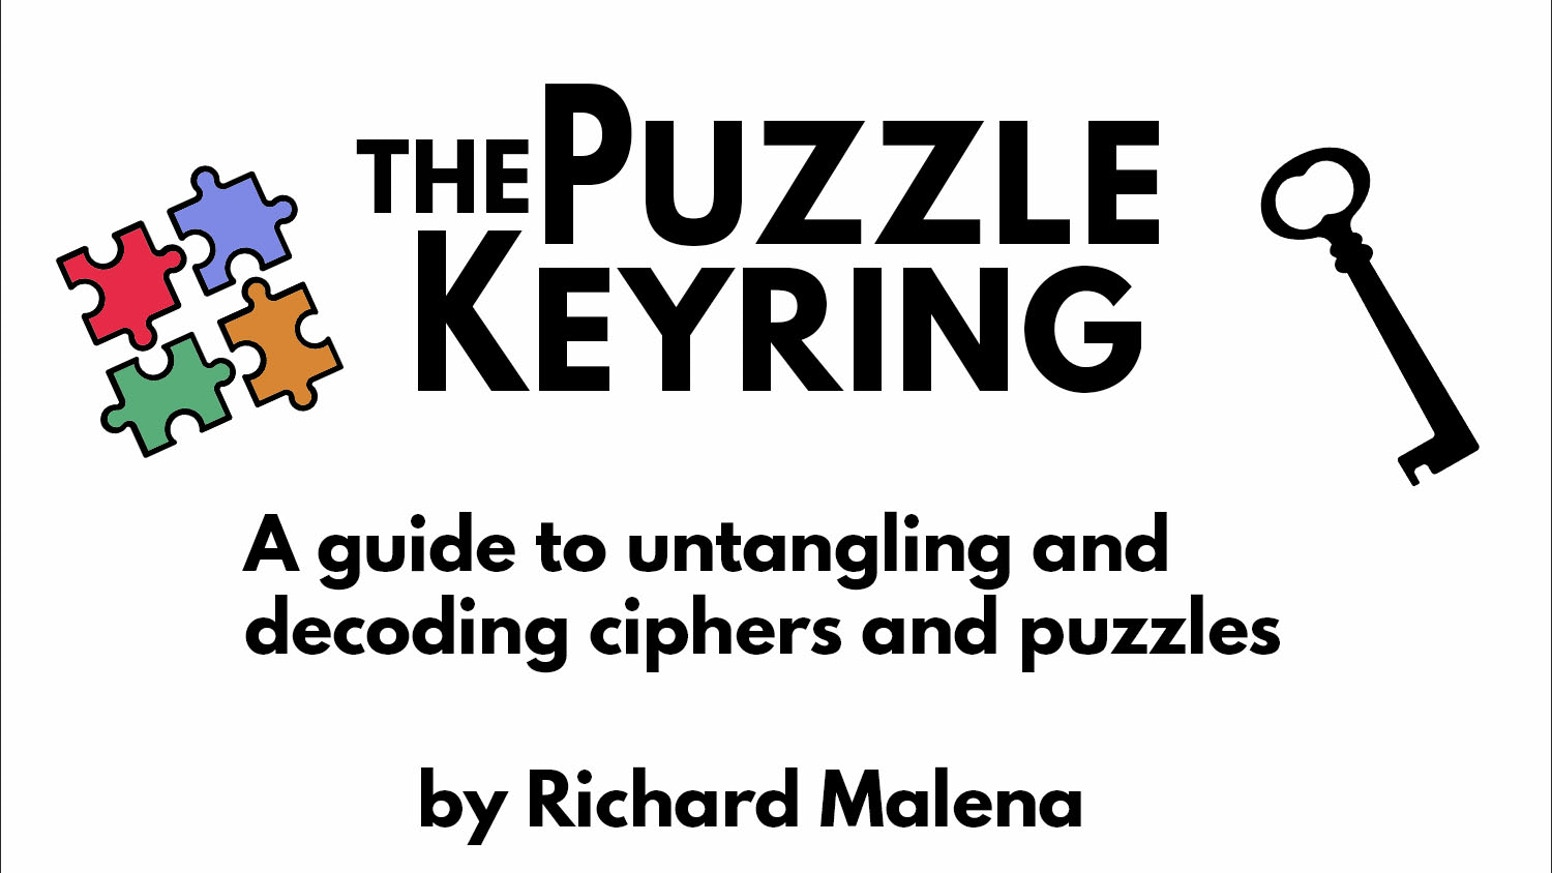 The perfect tool to solve codes and ciphers for escape rooms and puzzle events!